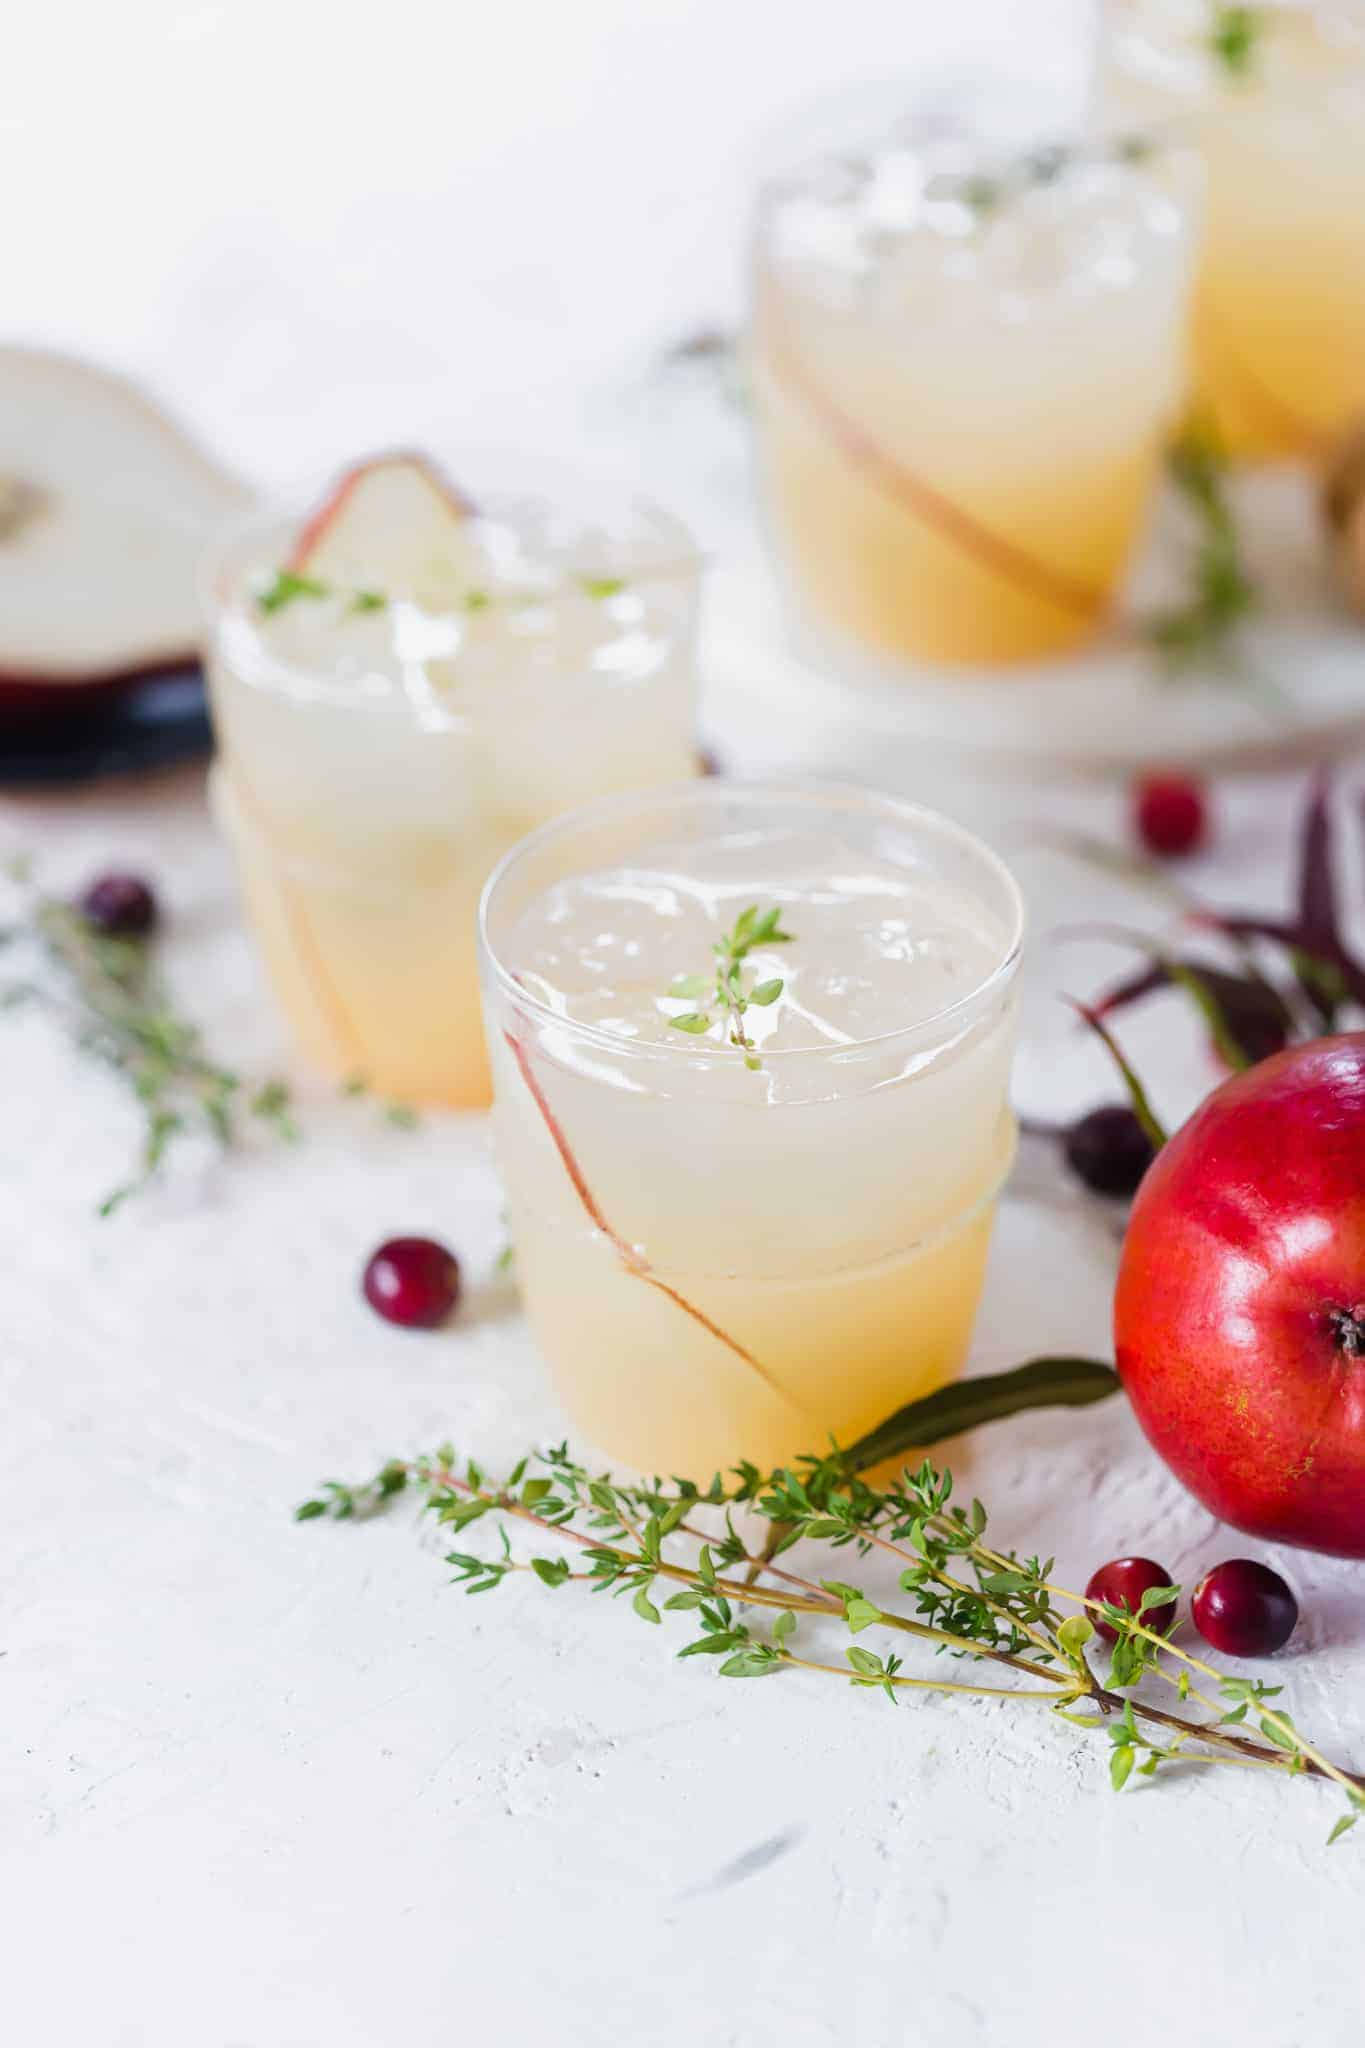 This Fizzy Pear Cocktail combines the flavors of rich pear, earthy thyme, Prosecco and 7UP for a refreshing winter drink. Paired well with Goat Cheese Crostini topped with pear, walnuts and honey. #pearcocktail #cocktail #pear #crostini #appetizer #drink #prosecco